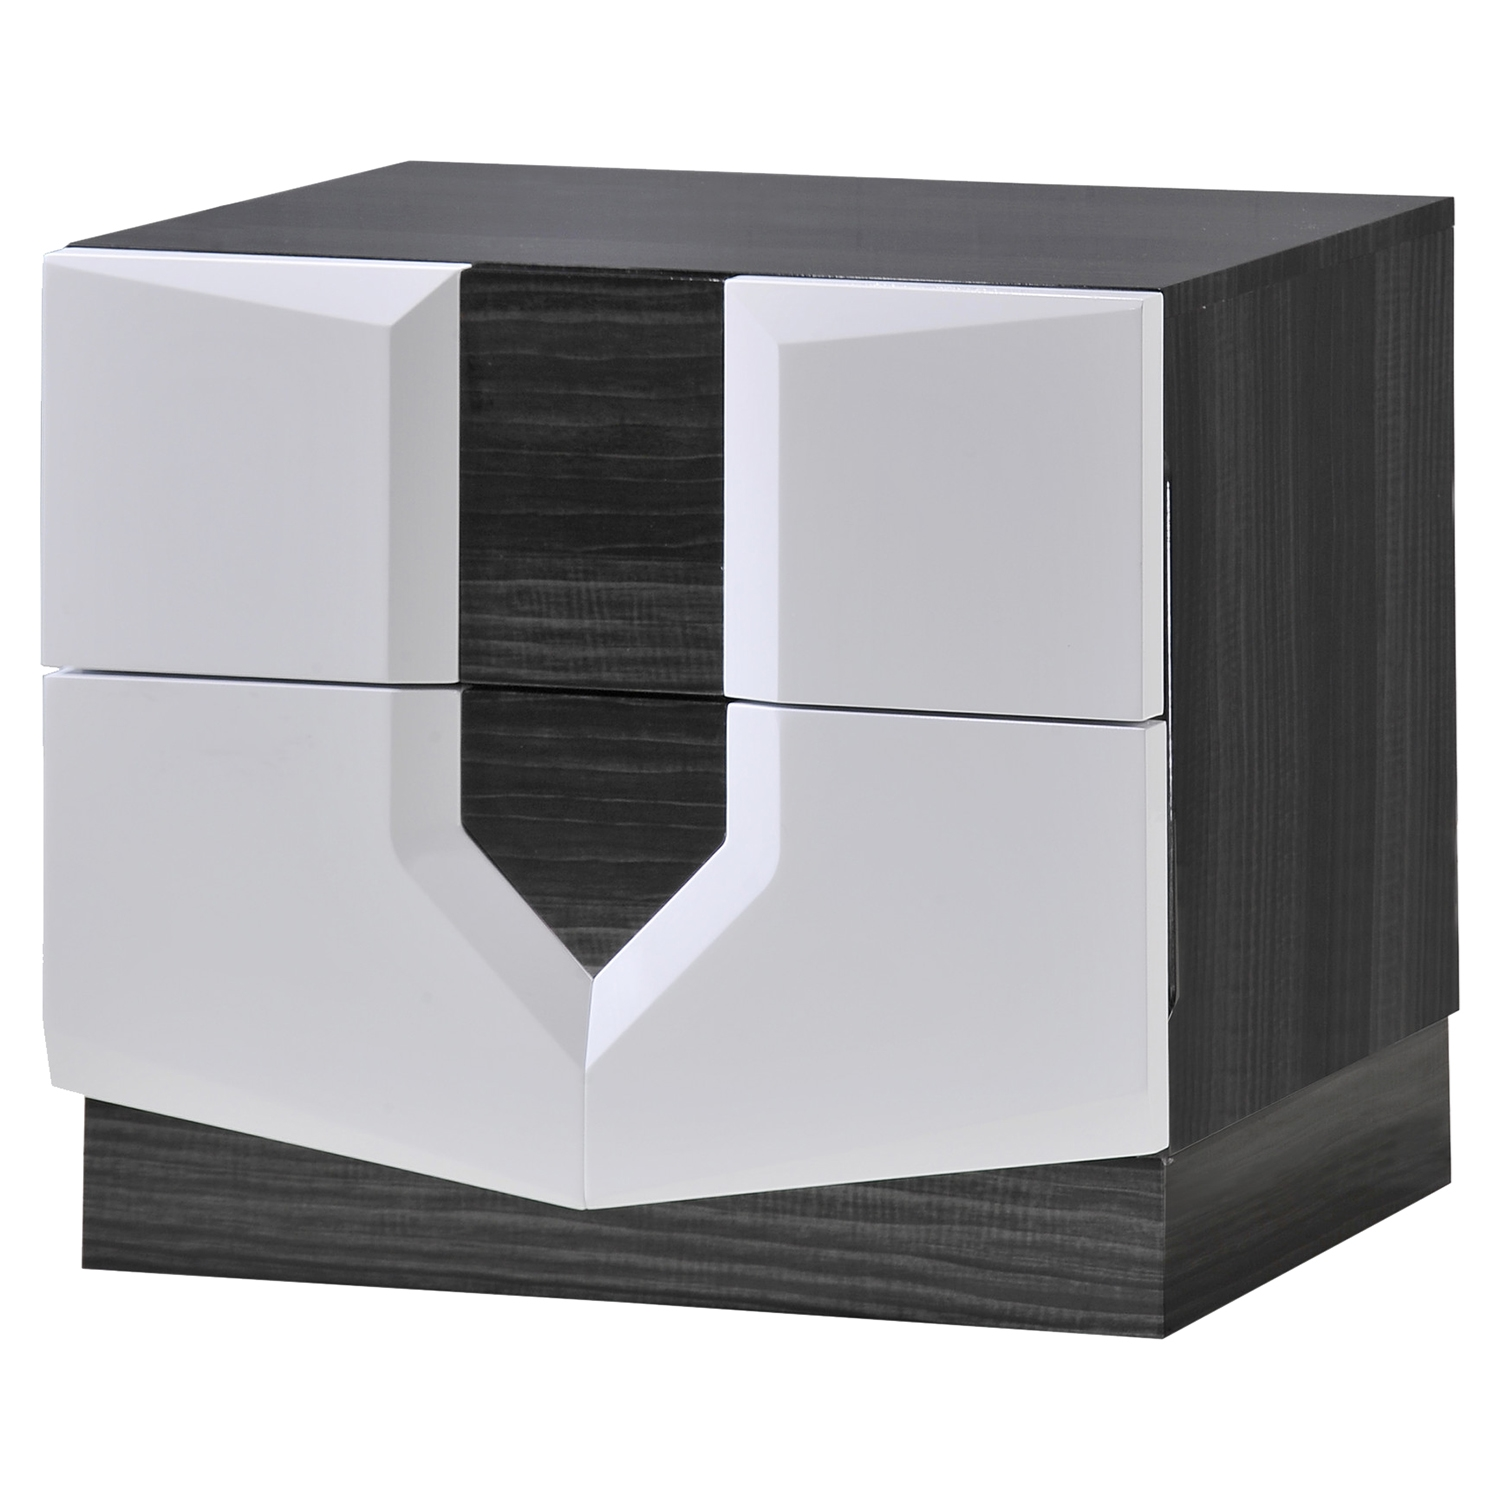 Hudson Nightstand in High Gloss Zebra Gray and White